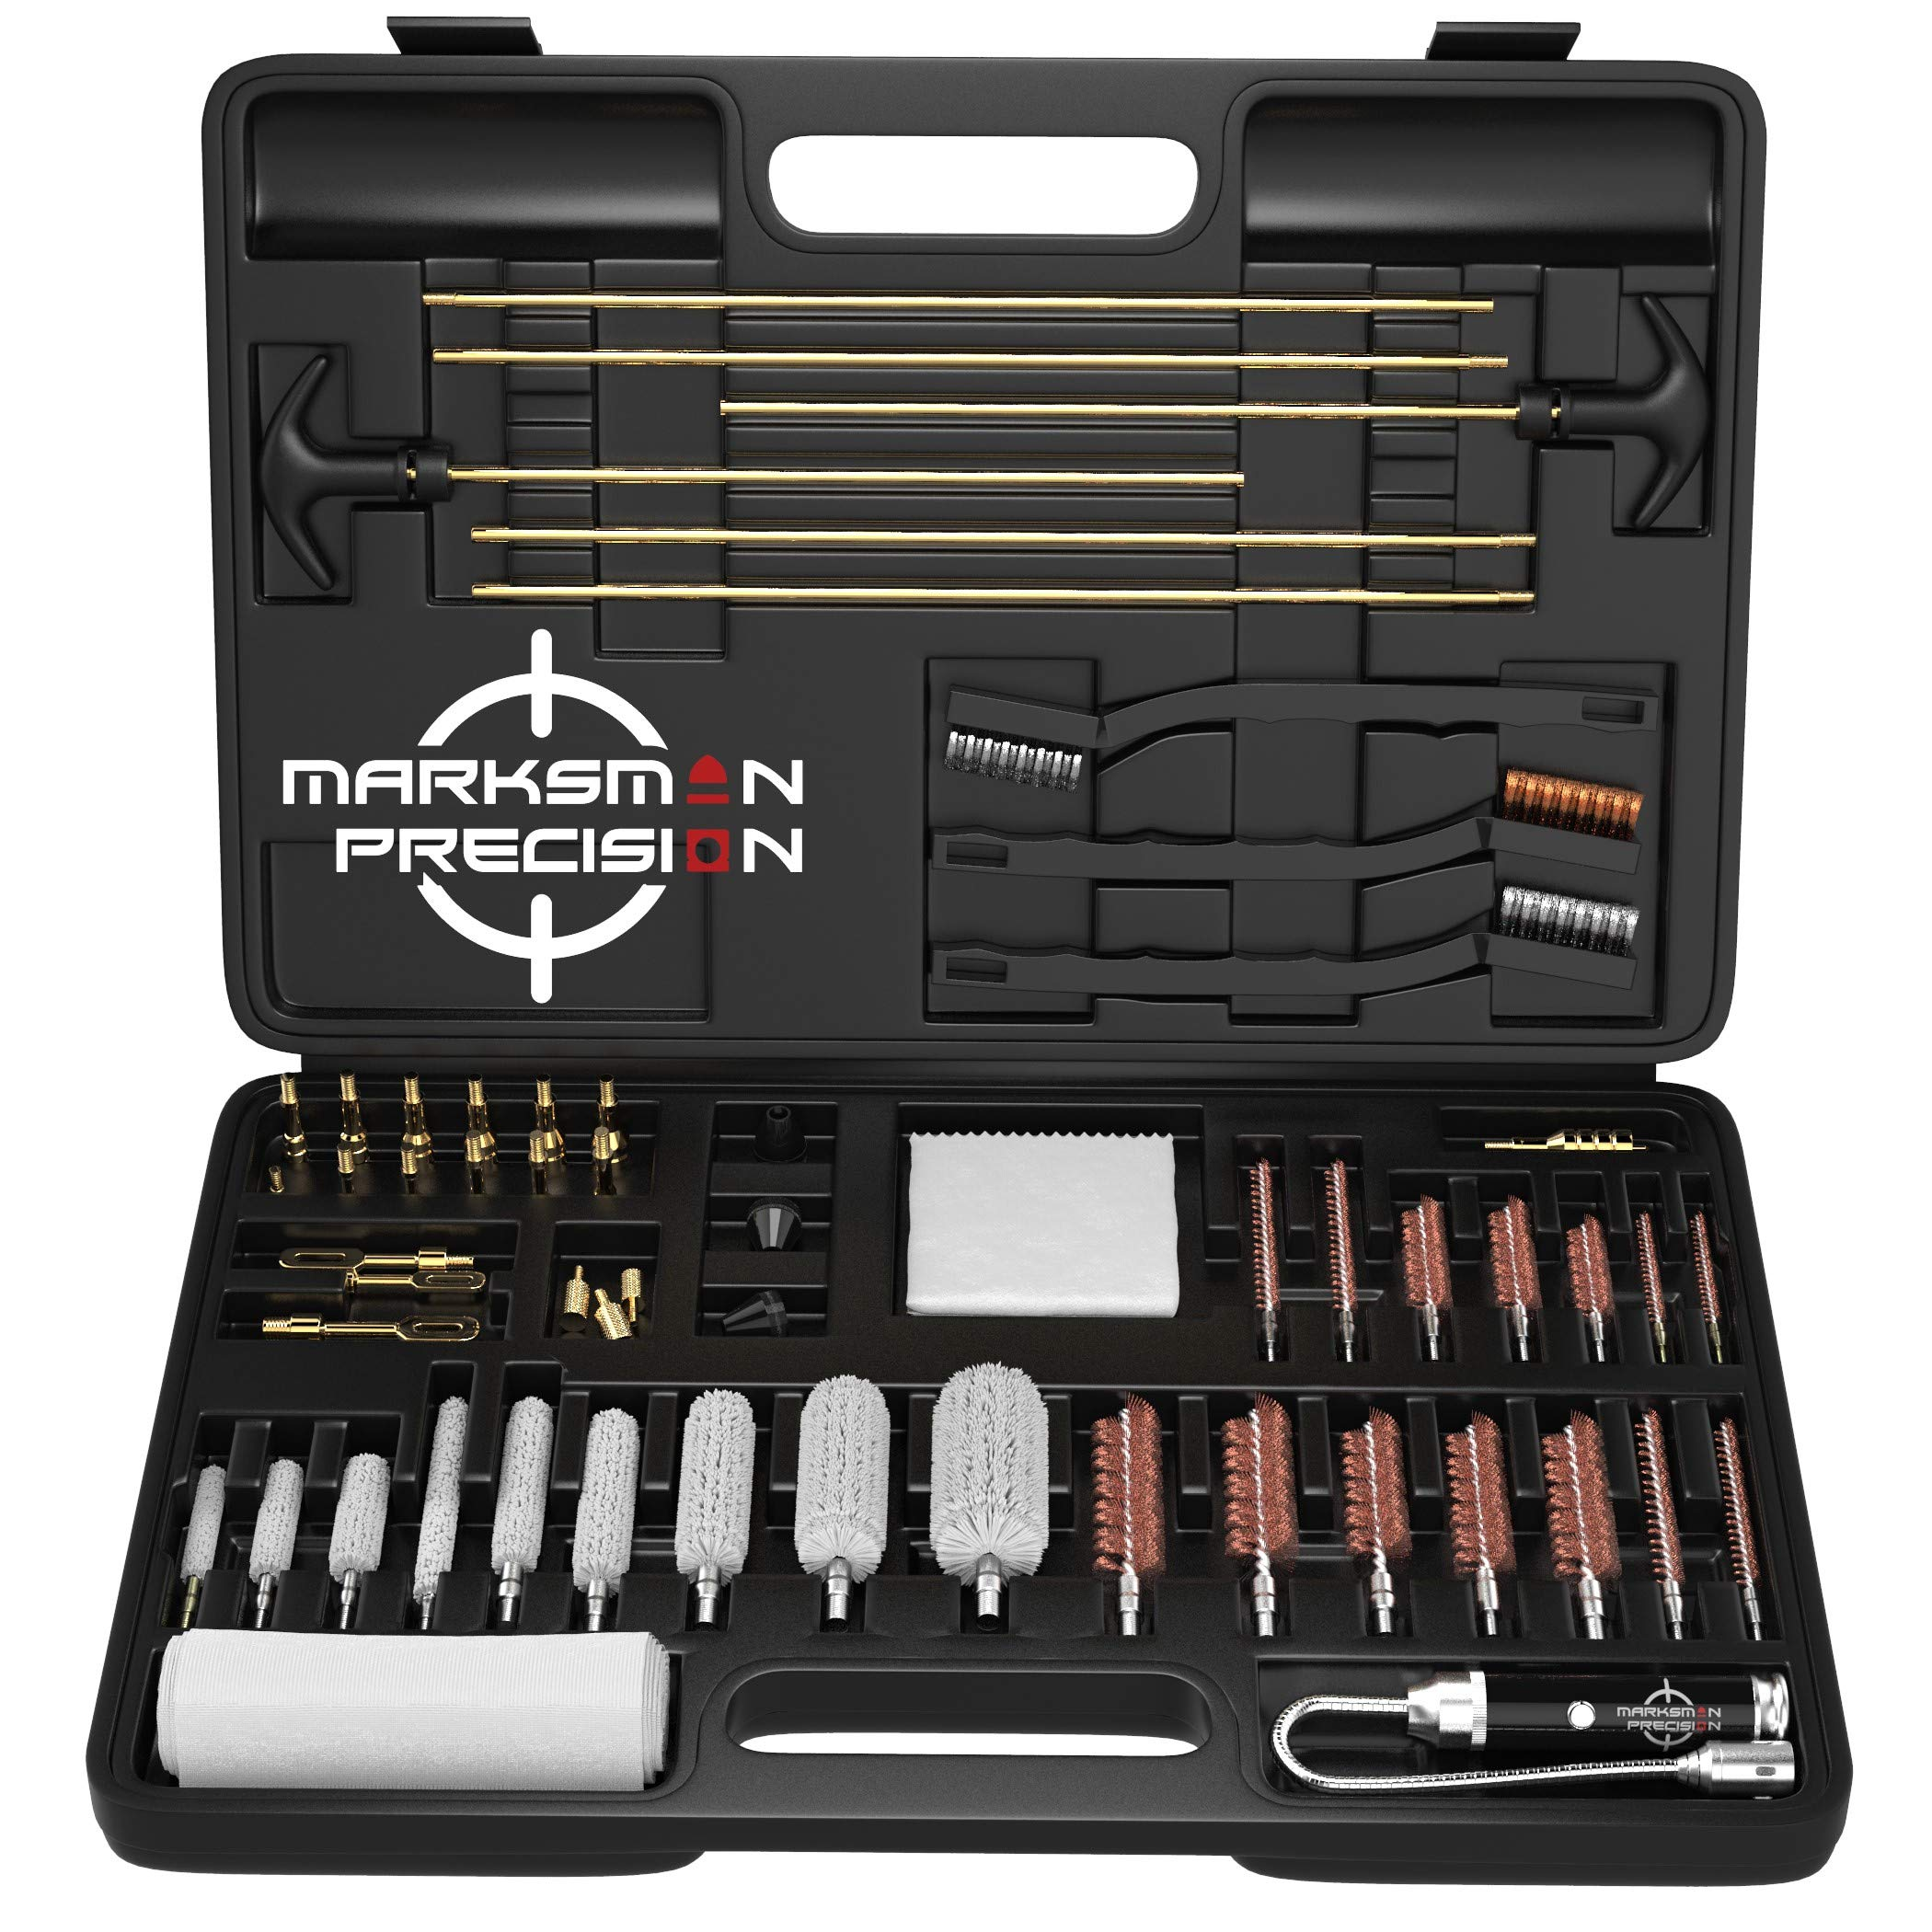 Marksman Precision Universal Gun Cleaning Kit | Best Brass Jags - Slotted Tips - Rods - Brushes | LED Bore Light | Optical Cloth | Hunting Shooting Rifle Pistol Shotgun Tactical -Plastic Portable Case by Marksman Precision